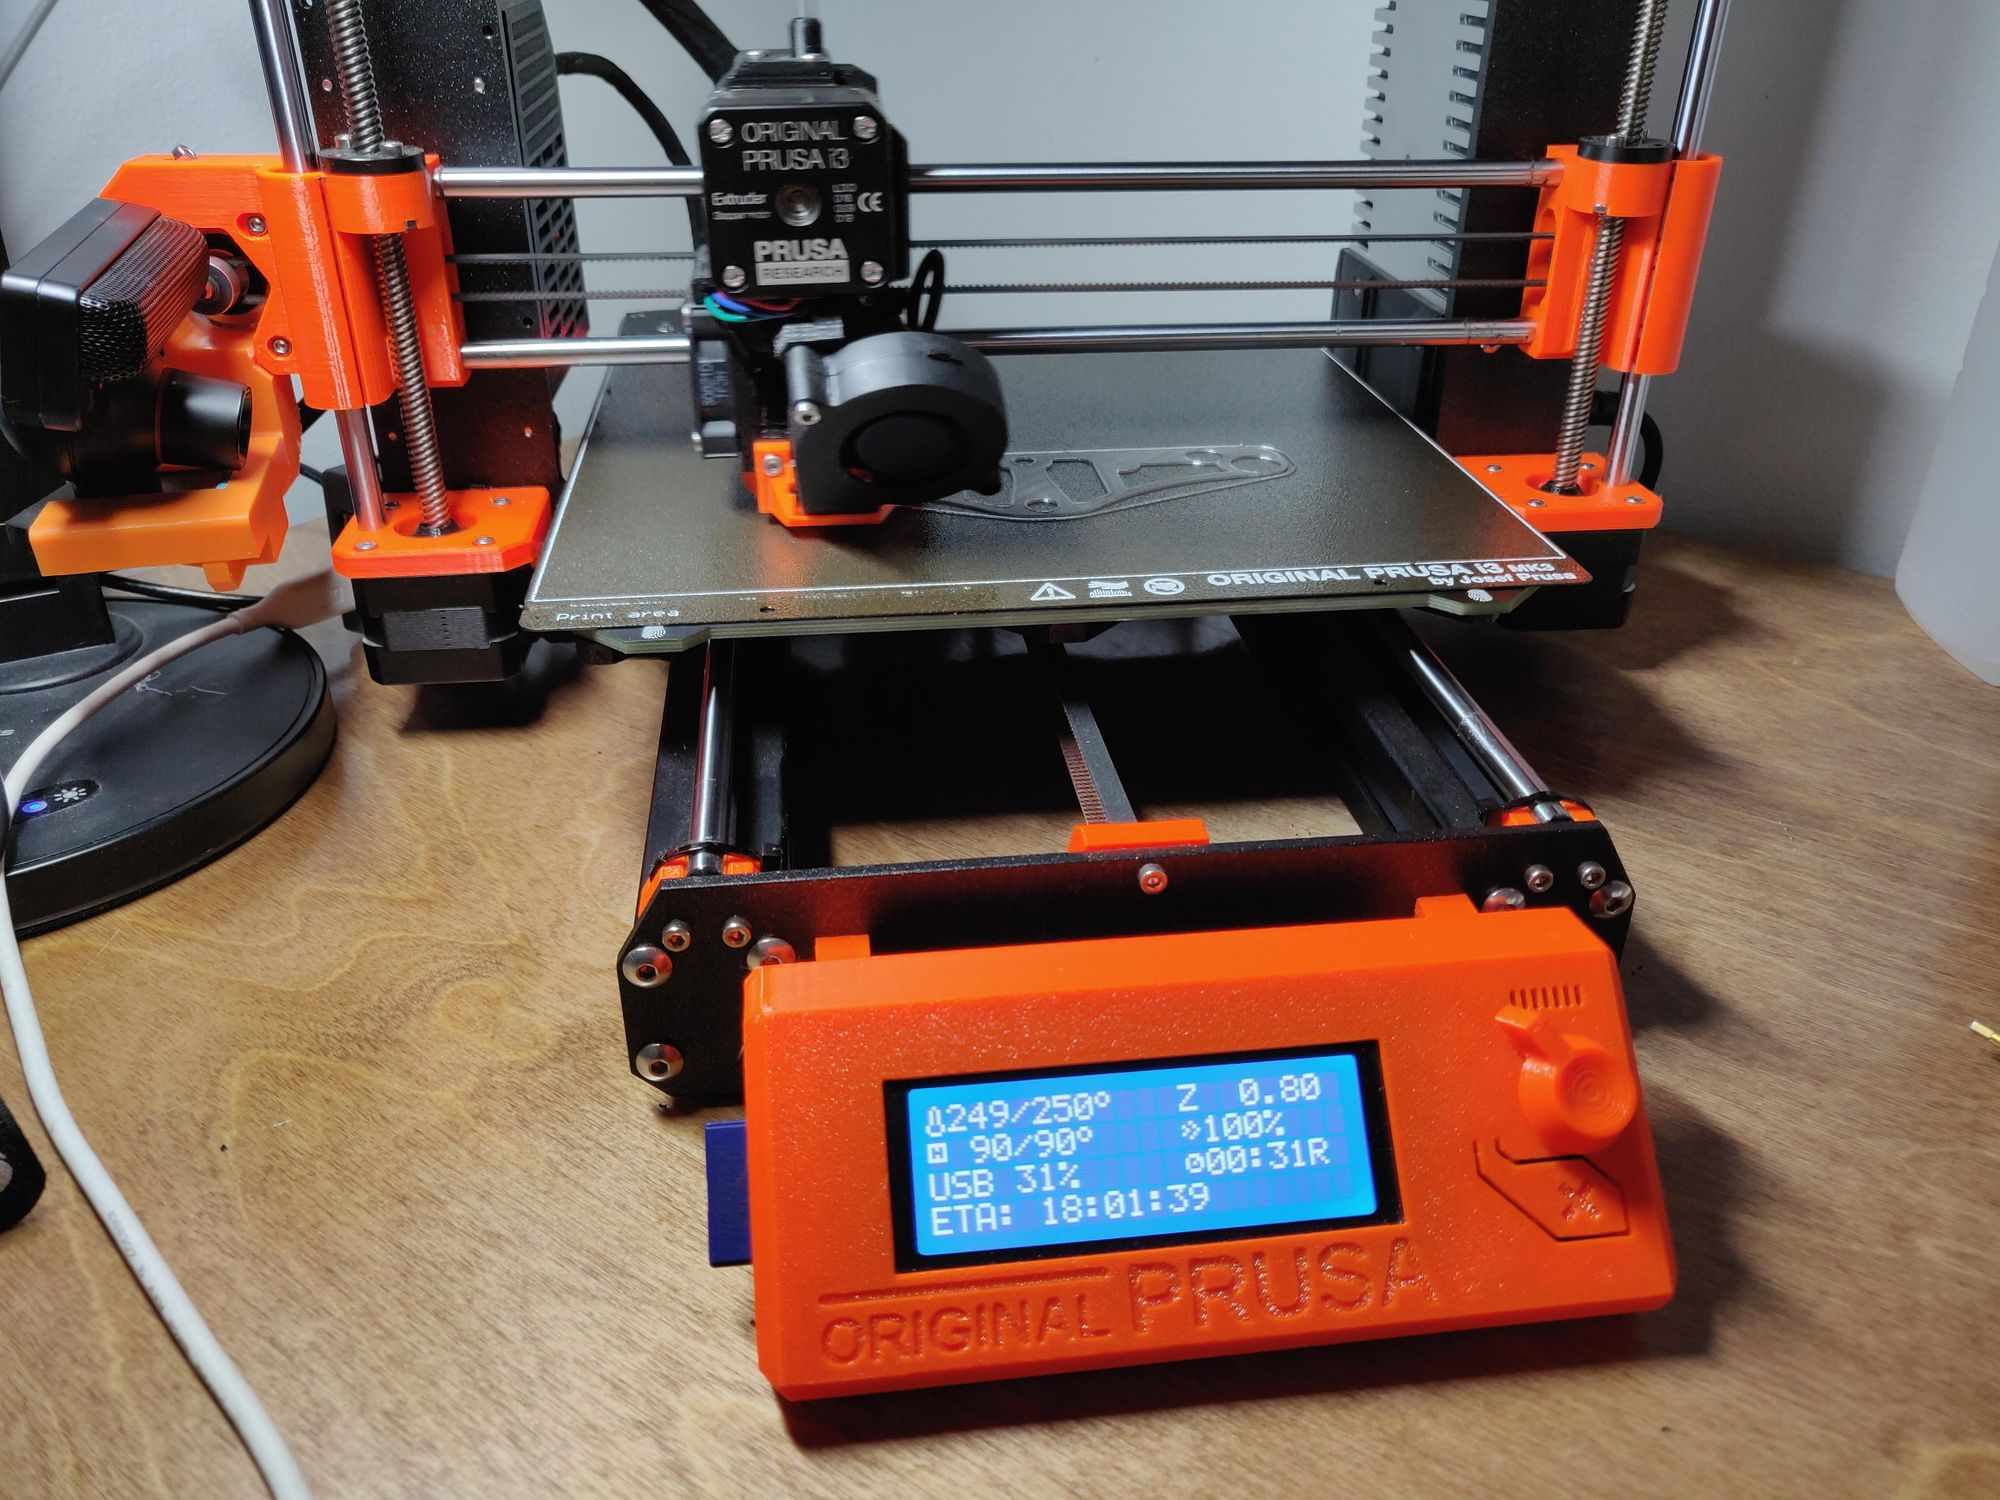 Eliminate 3d Printing Mesh Bed Leveling Globs on a Prusa i3 MK3